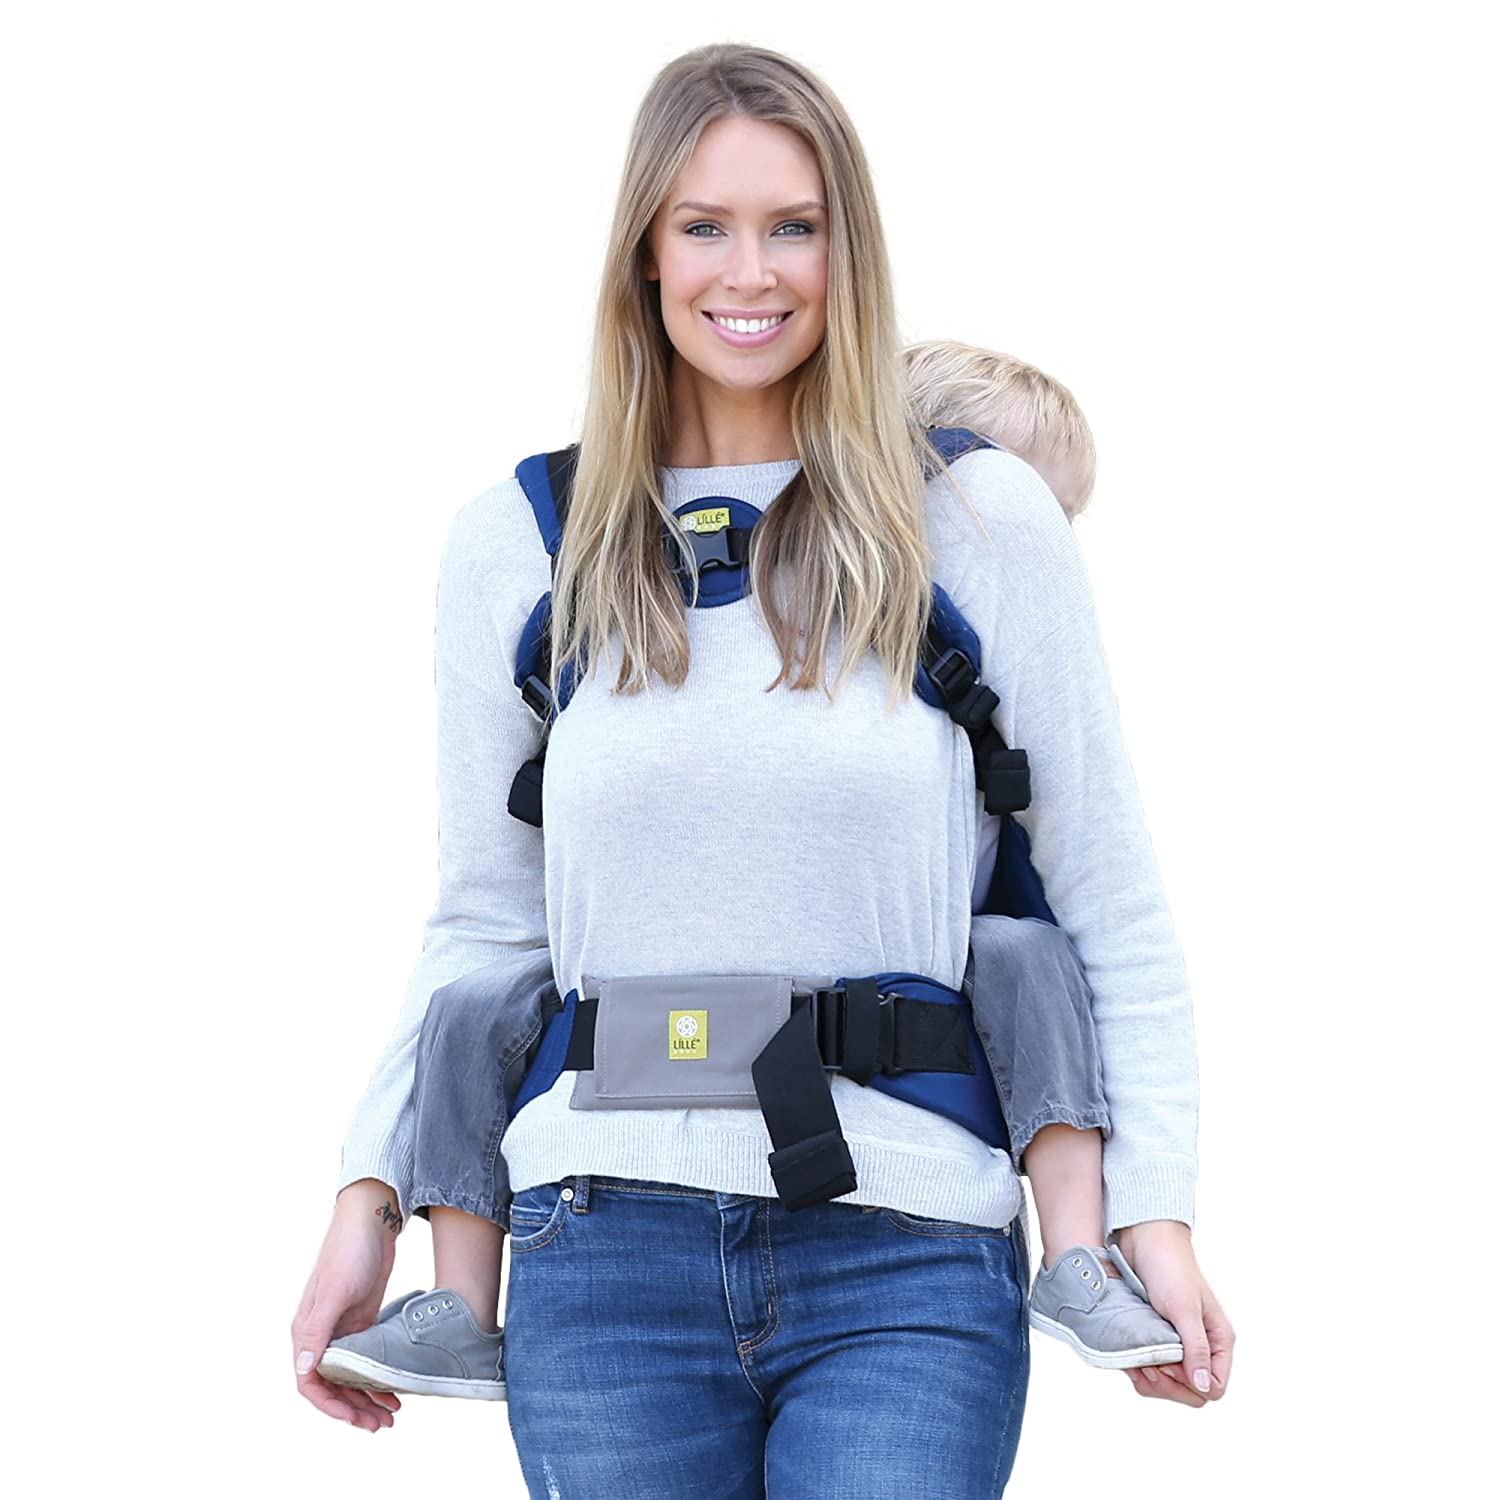 LÍLLÉbaby Baby Carrier Tummy Pad, Black (Medium) LILLEbaby ASC-TS-18-BM